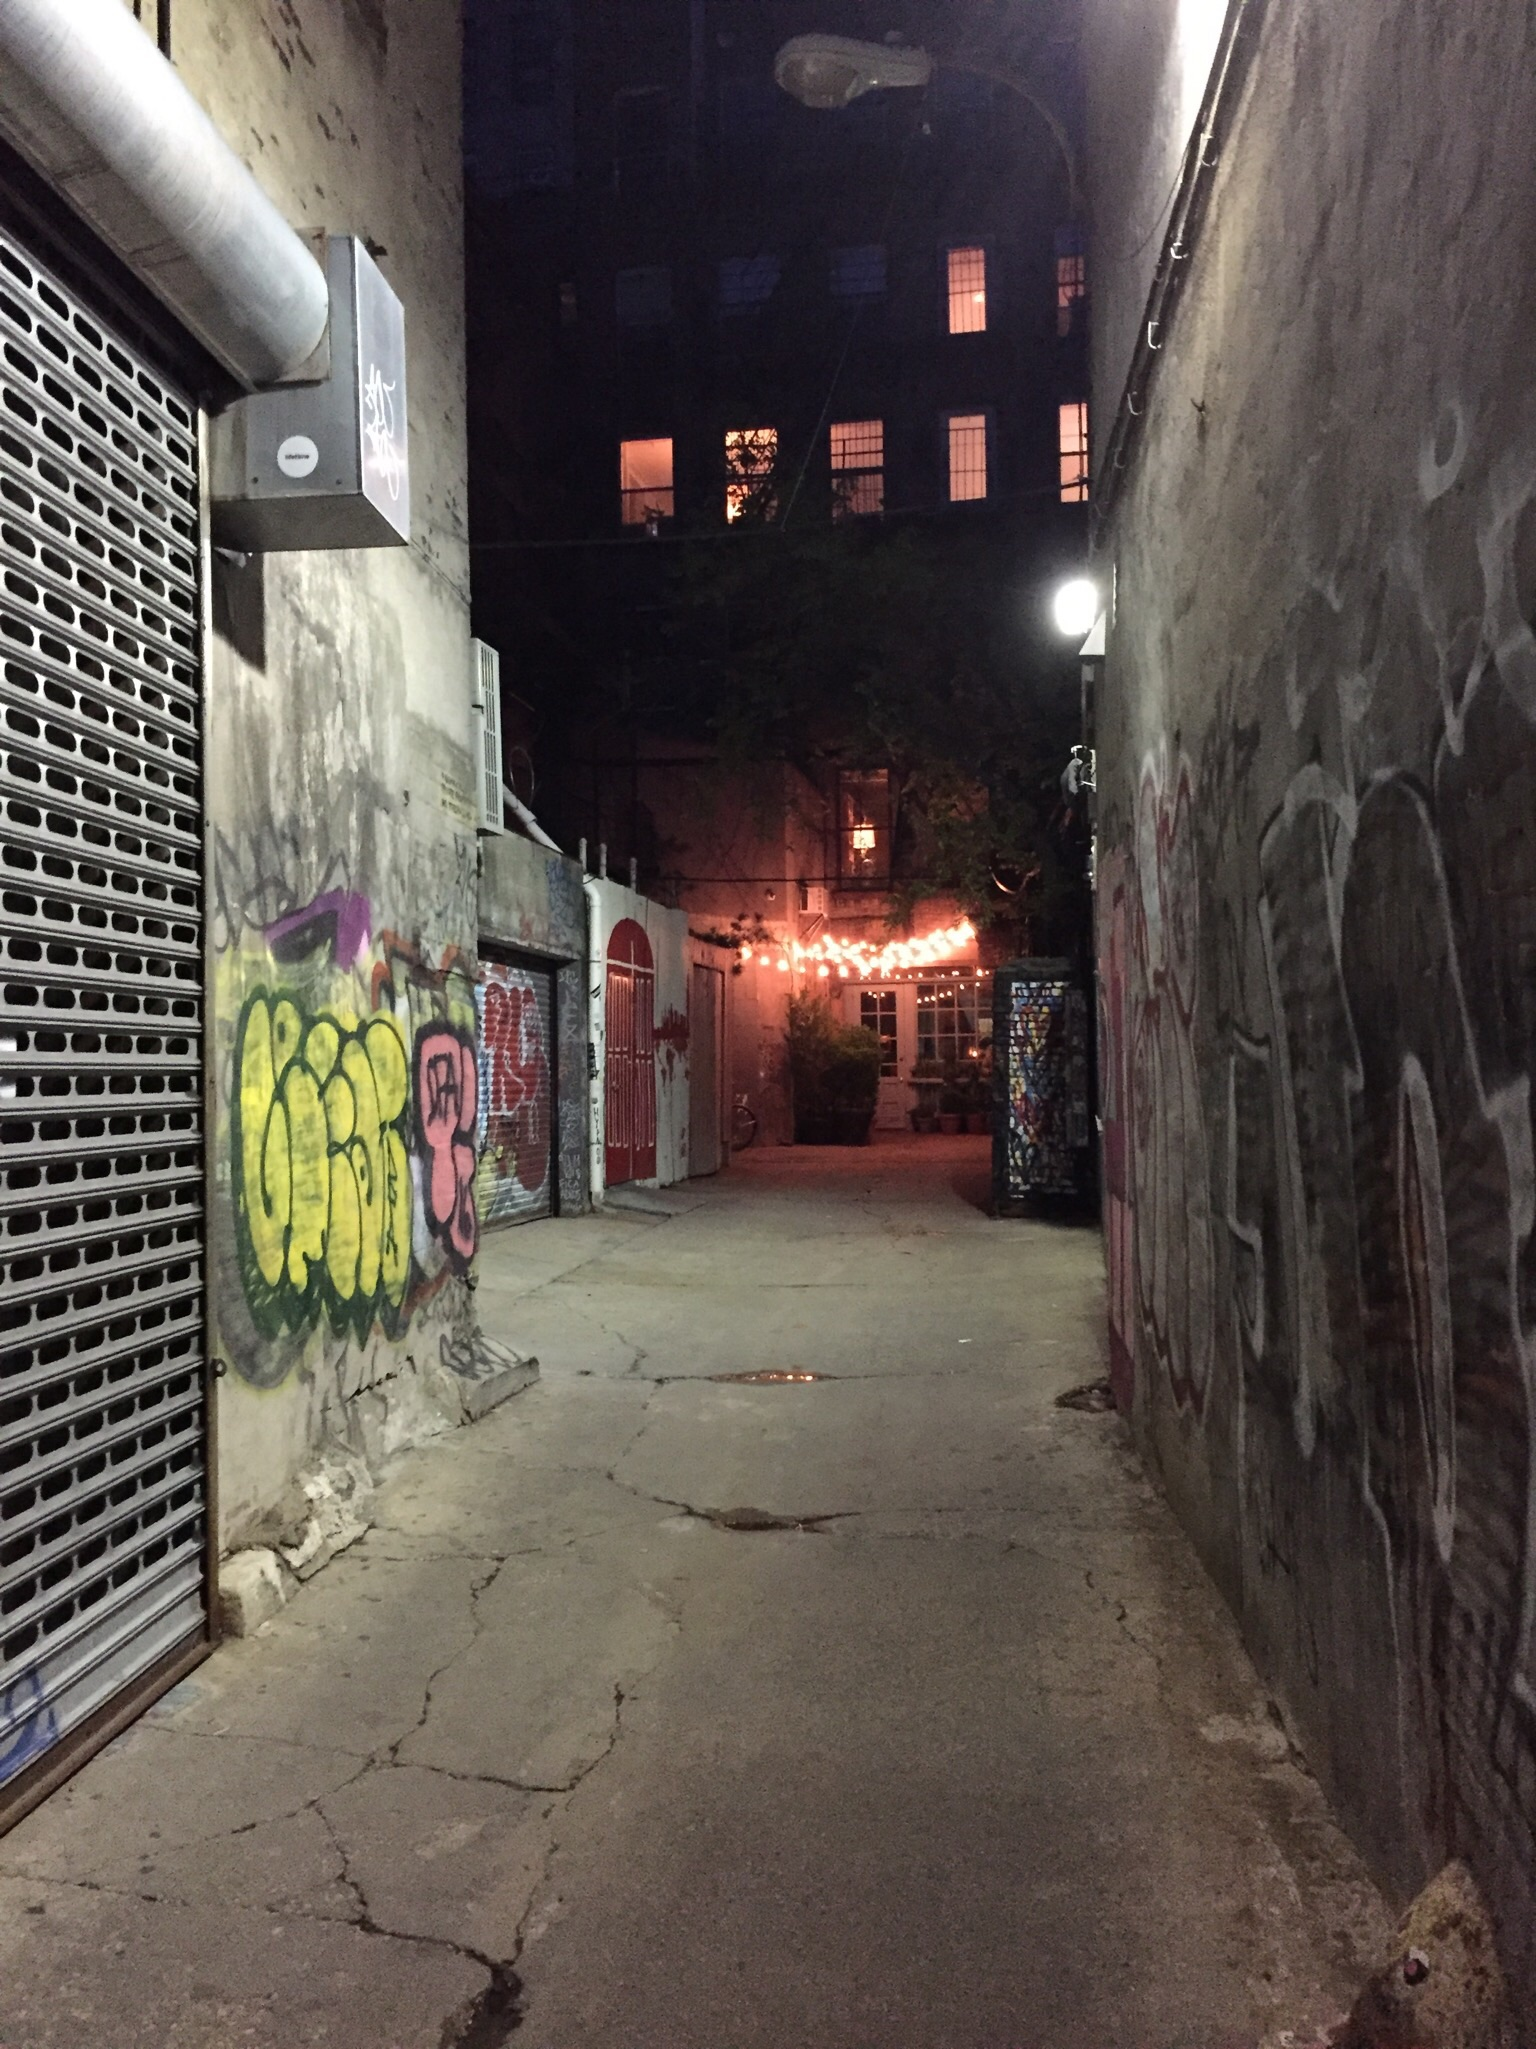 See that string of lights at the end of the alley? That's the entrance to the restaurant.